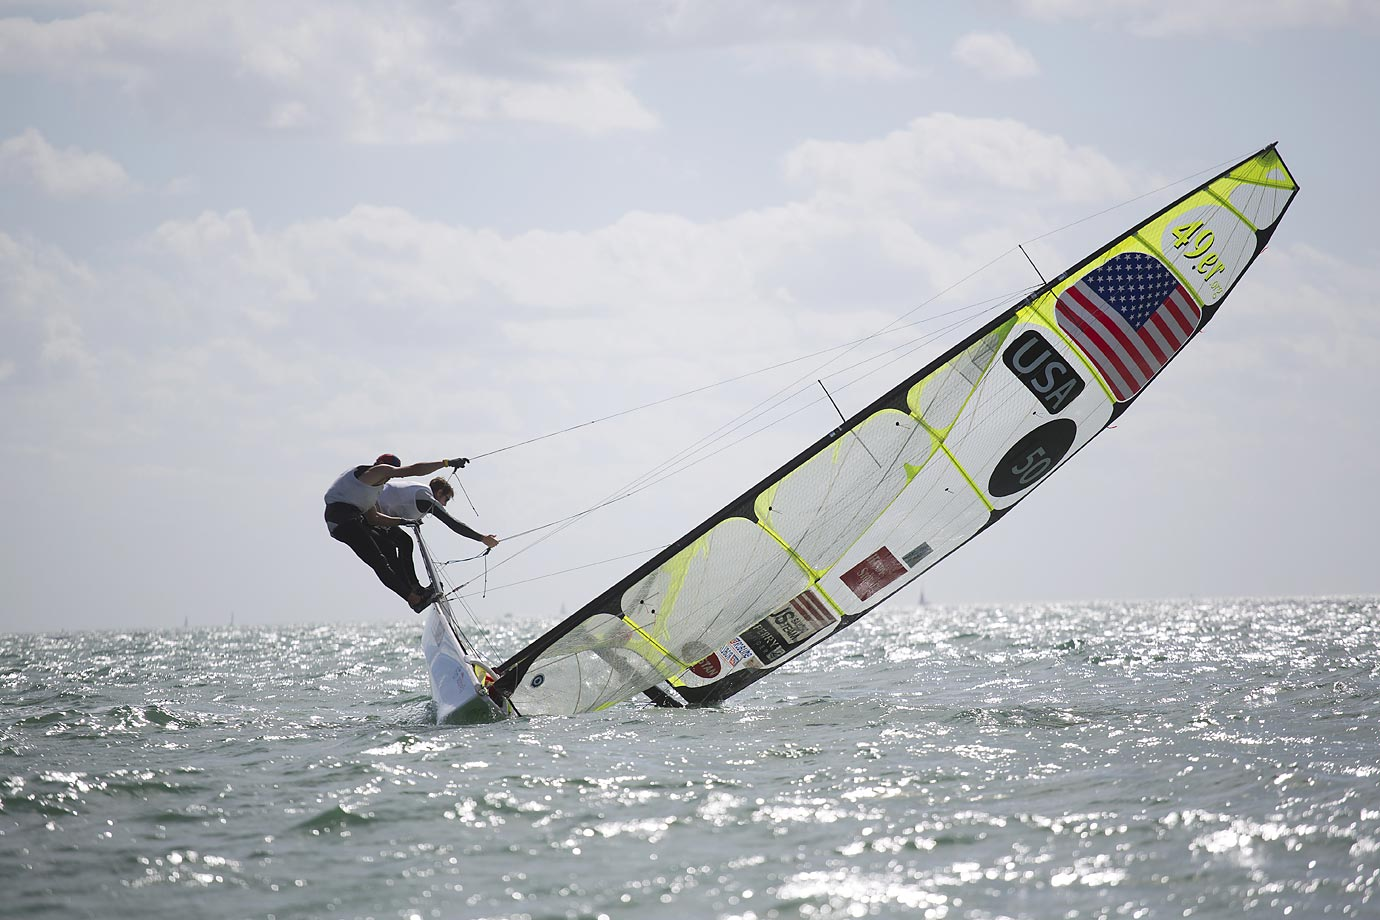 Brad Funk and Trevor Burd of the U.S. try to keep their 49ers class boat upright during the ISAF Sailing World Cup.